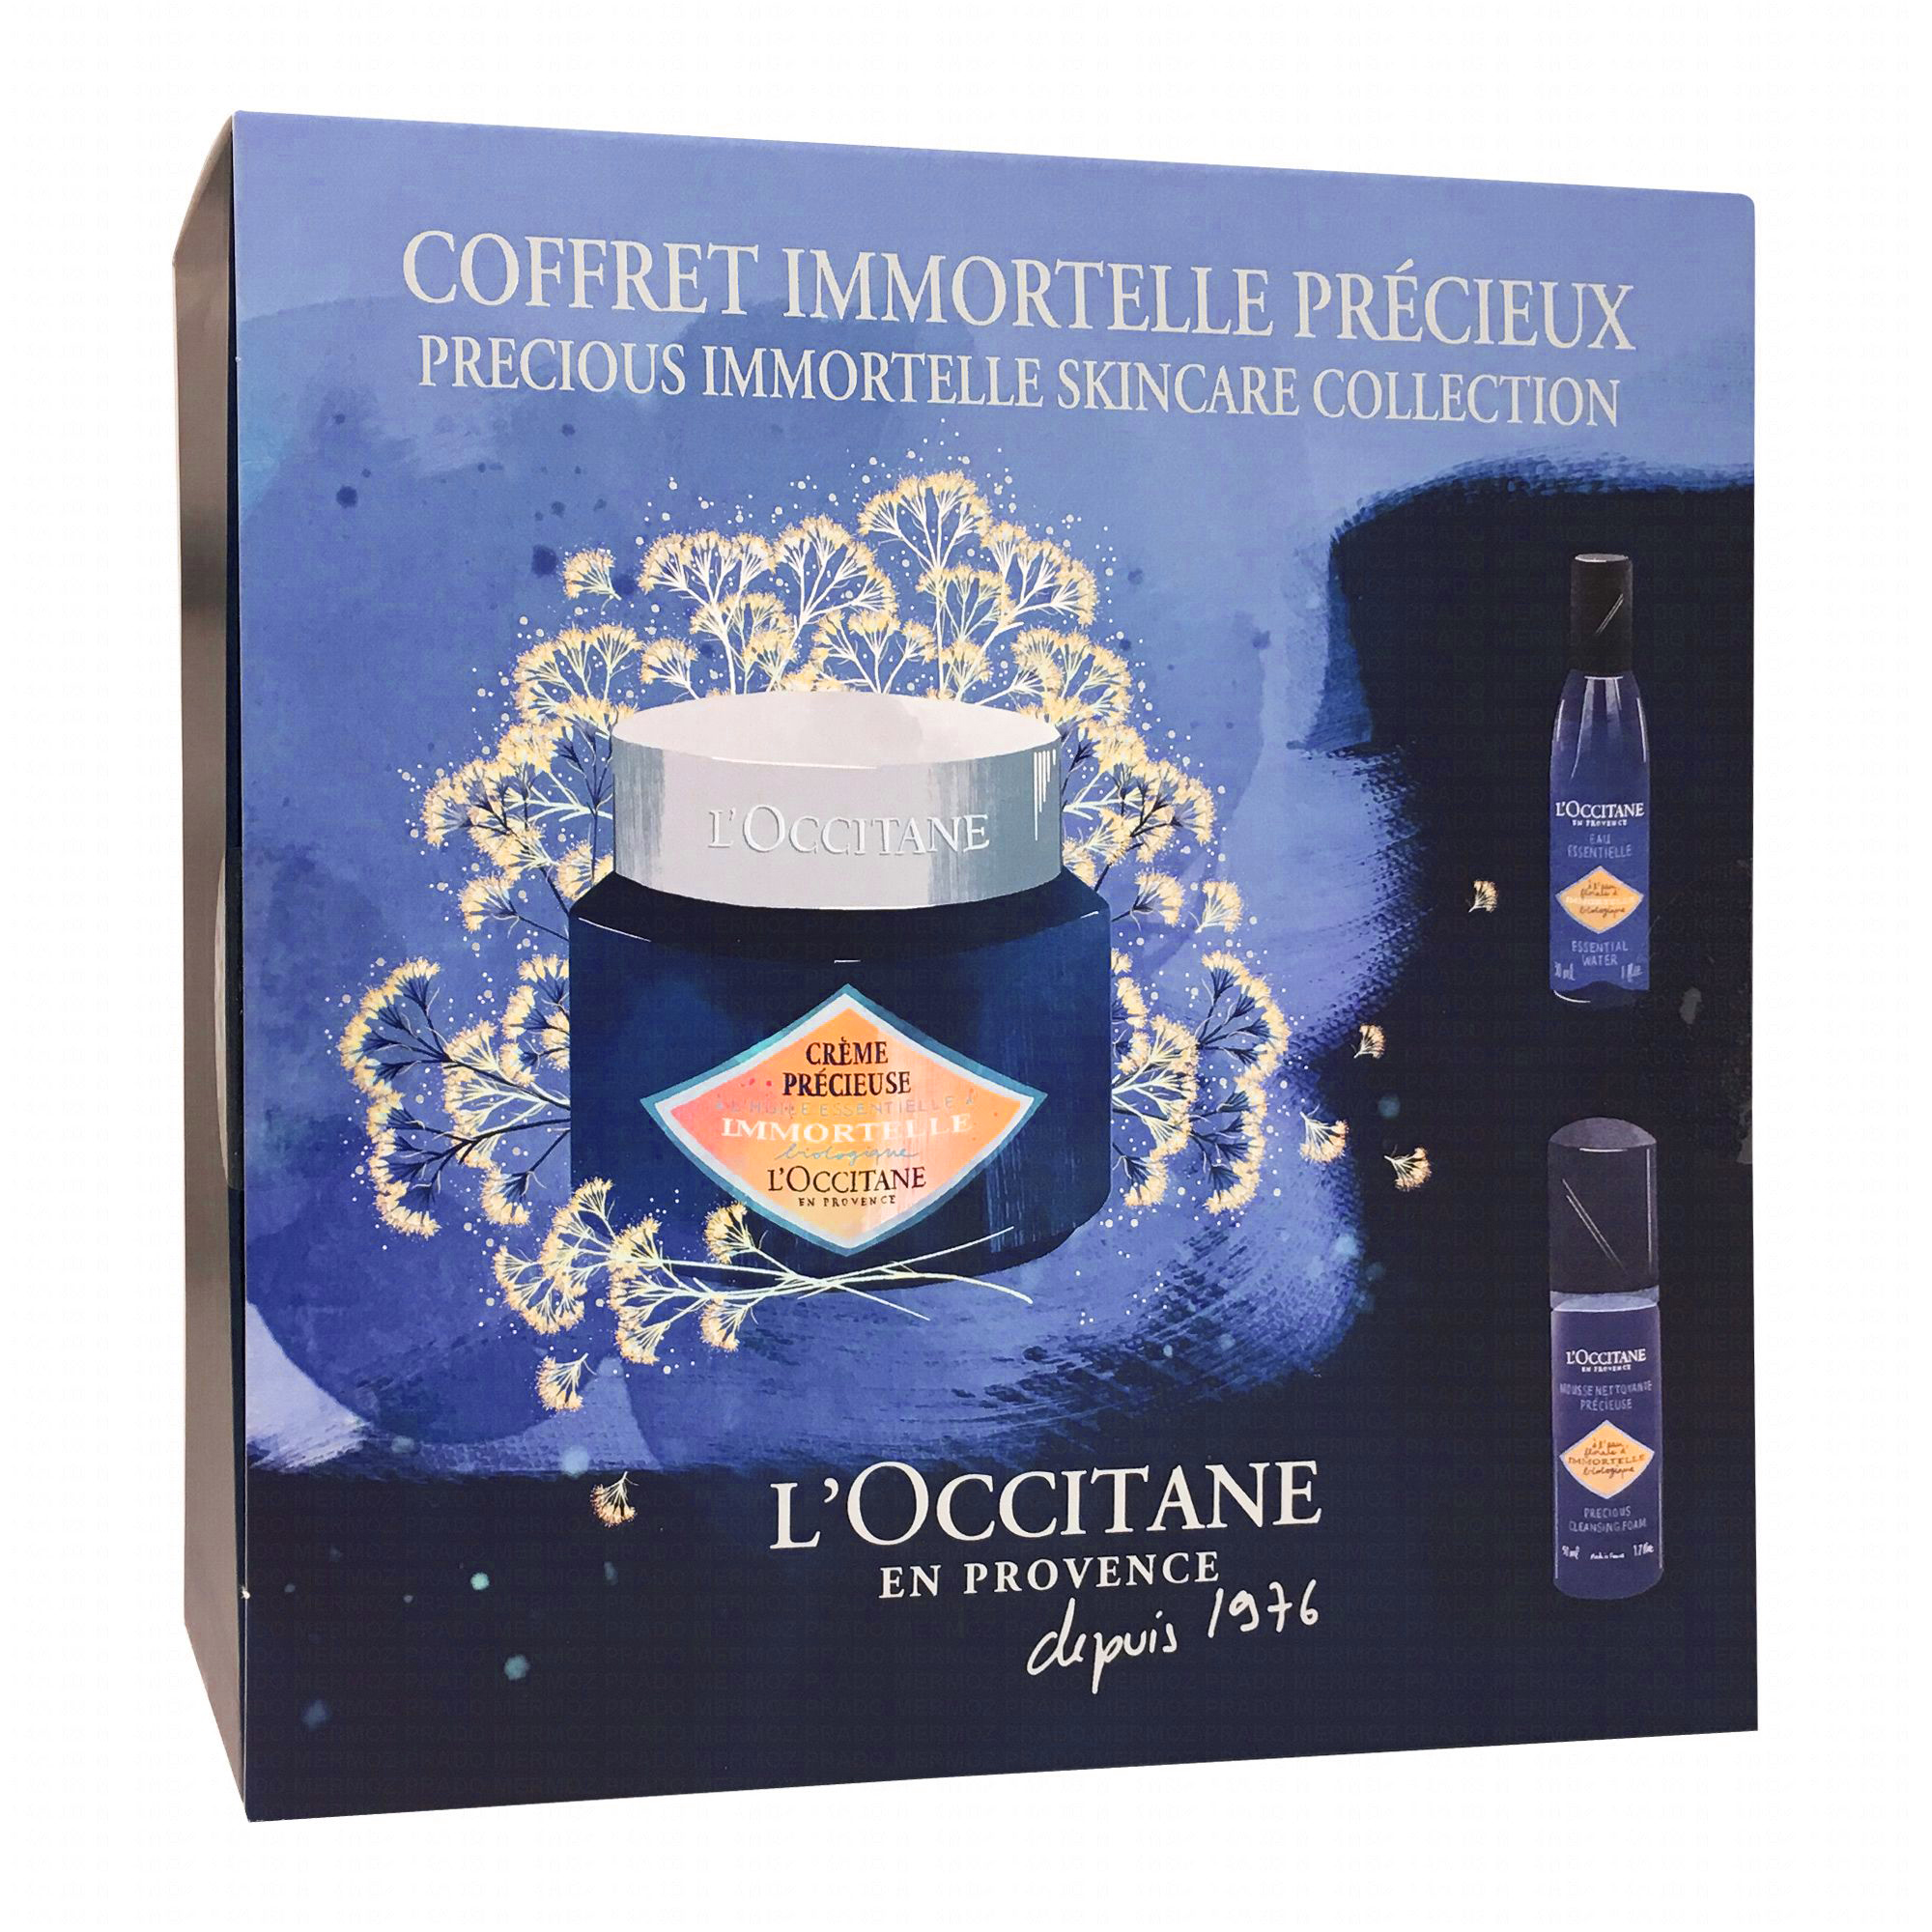 occitane-coffret-immortelle-3-2-24134_3_1481631417